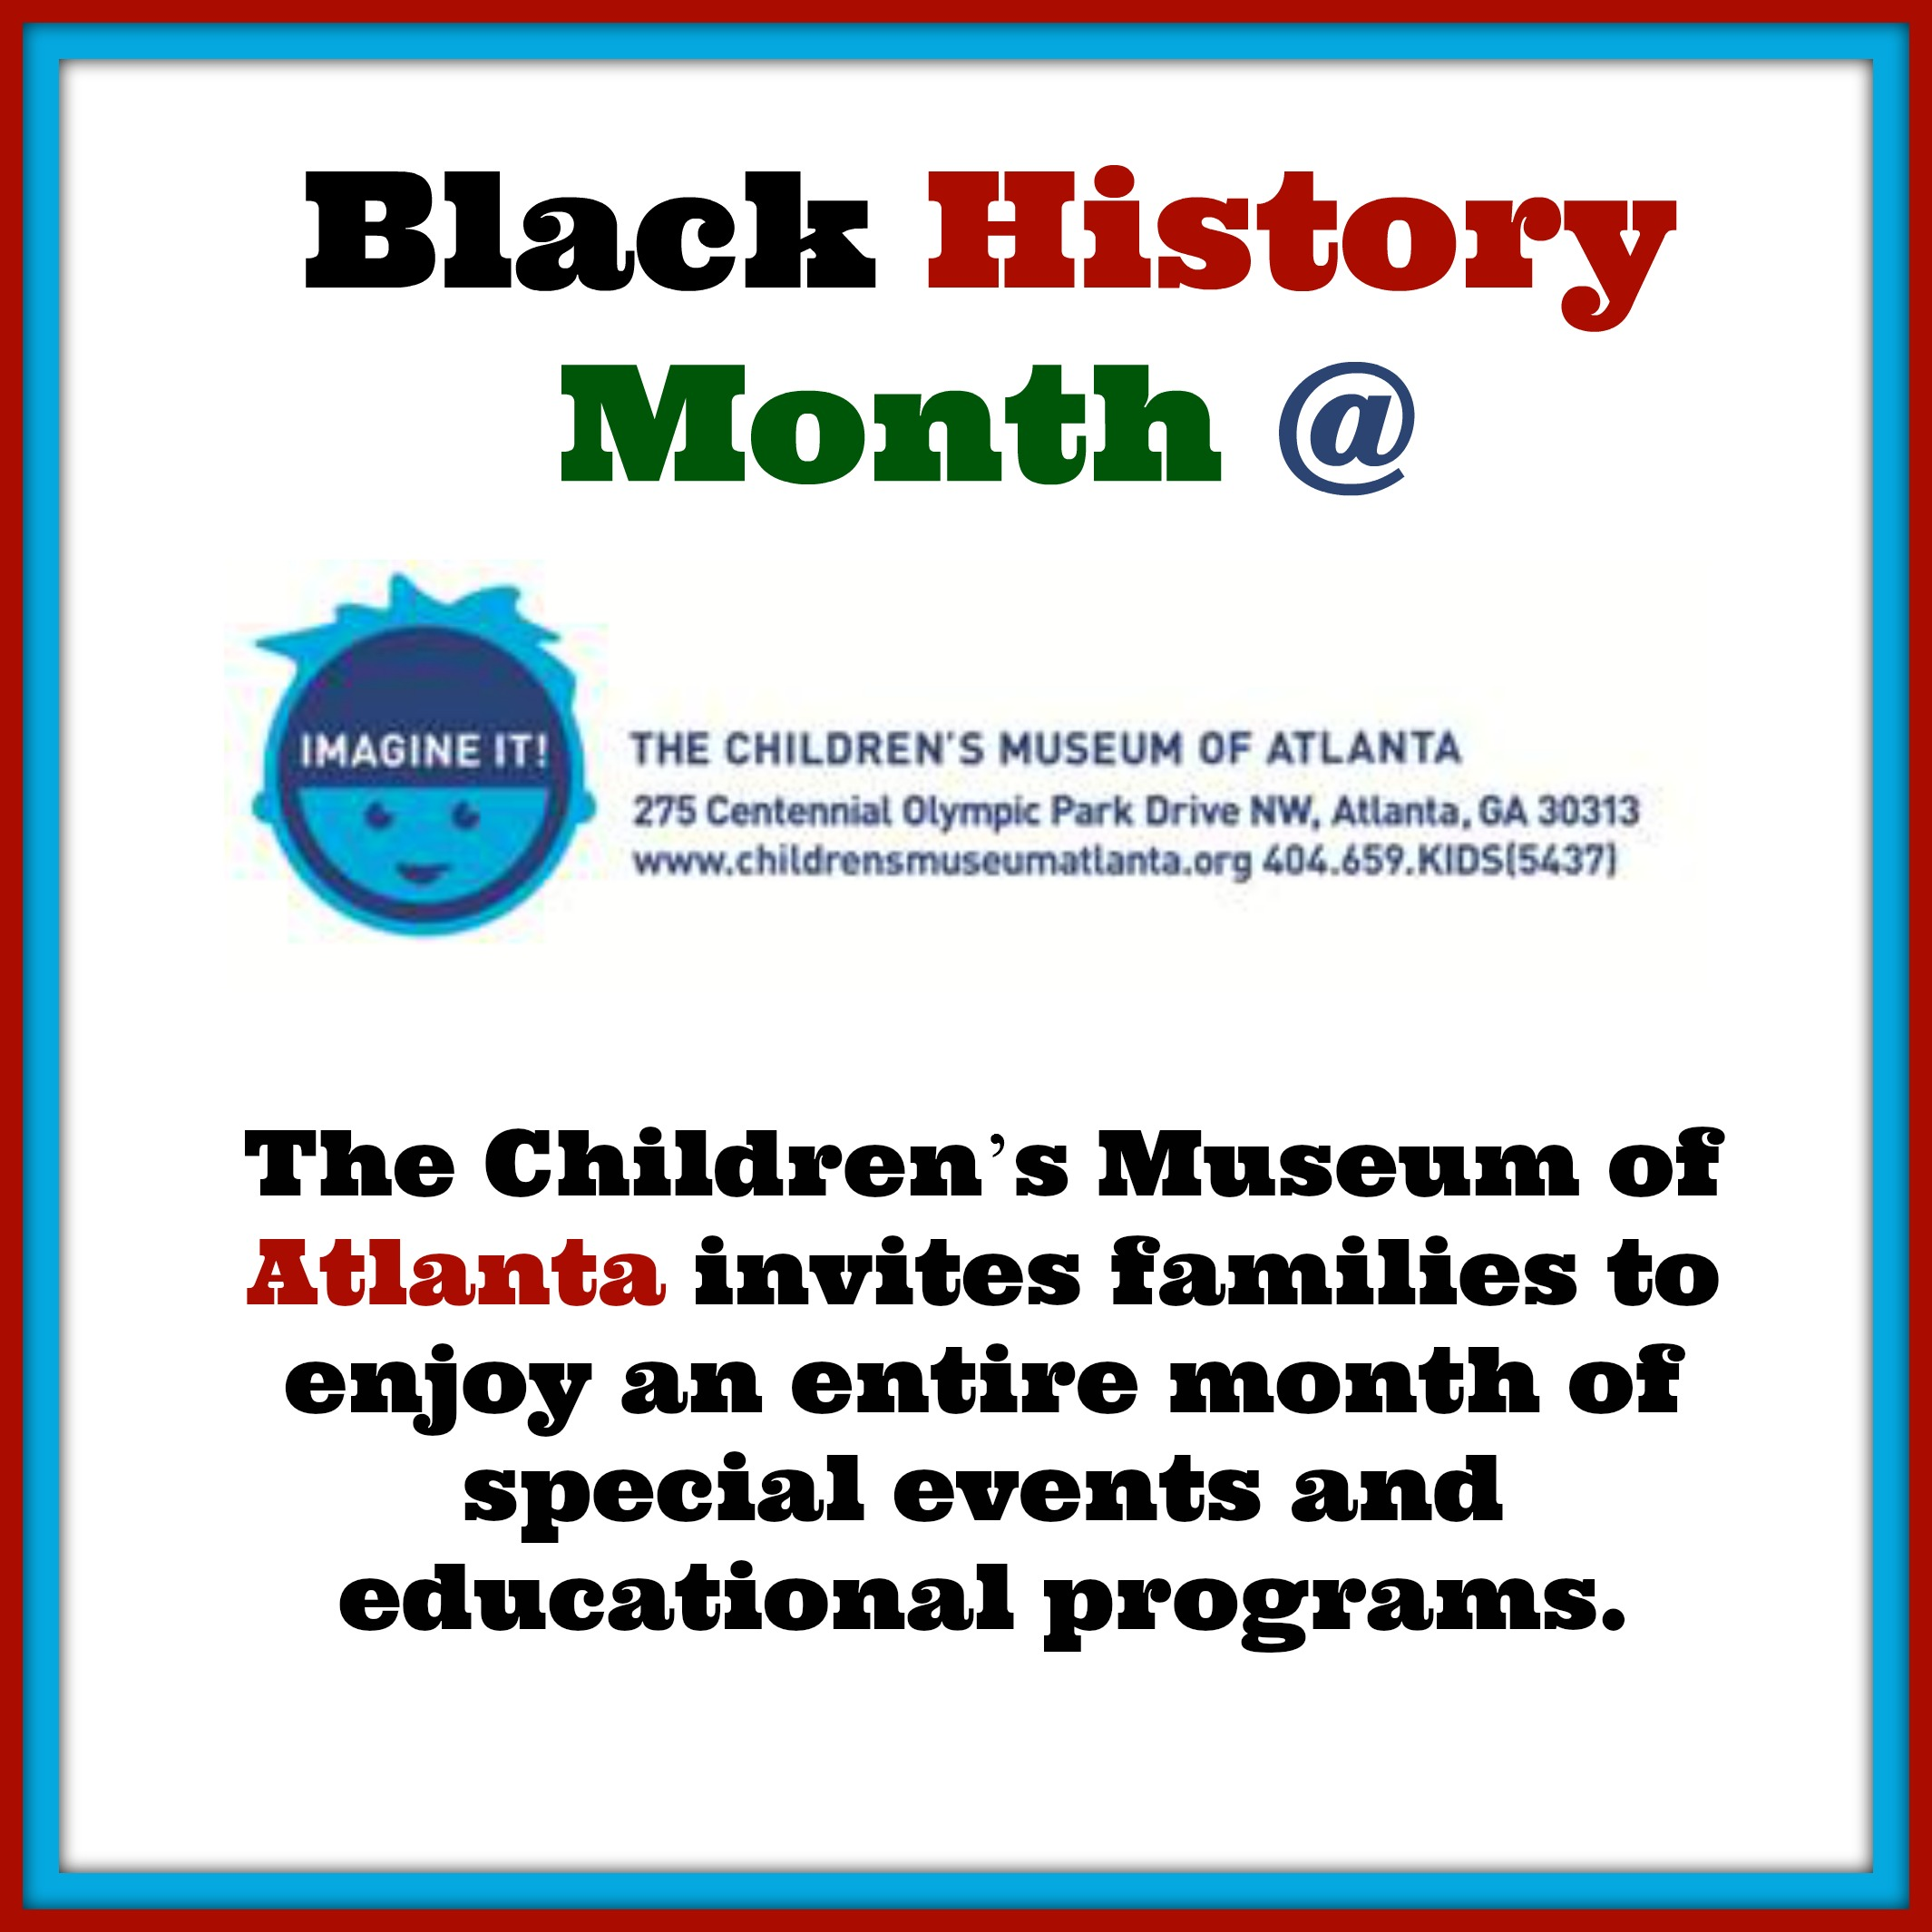 African Hair Shop Bern Black History Month At The Children 39;s Museum Of Atlanta